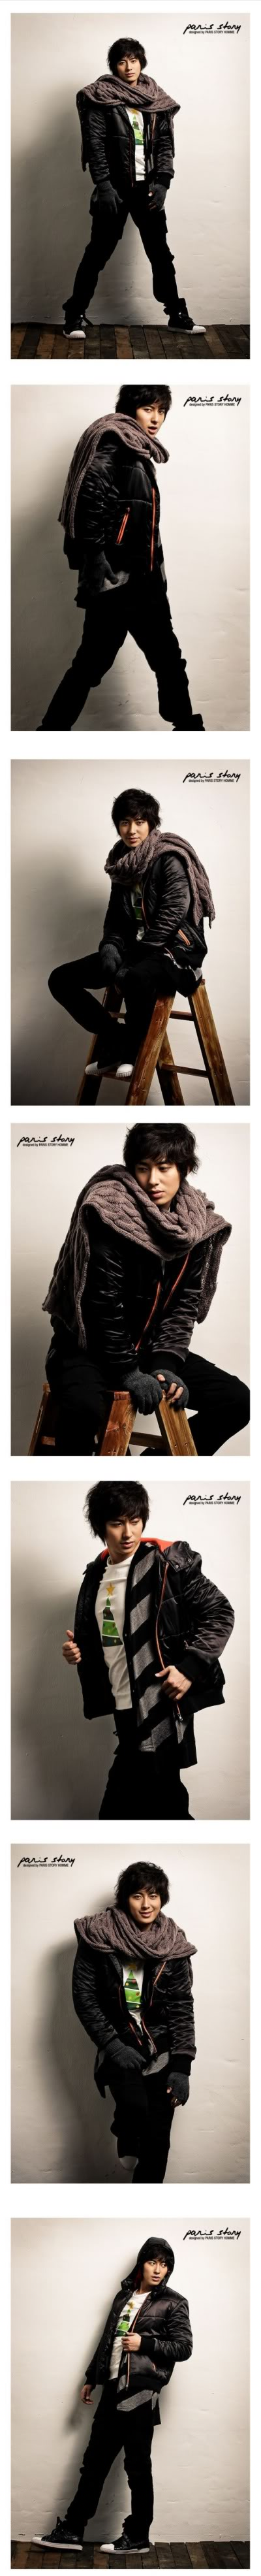 Lee Jee Hoon - Paris Story Hommes Collection I PH85-J-1